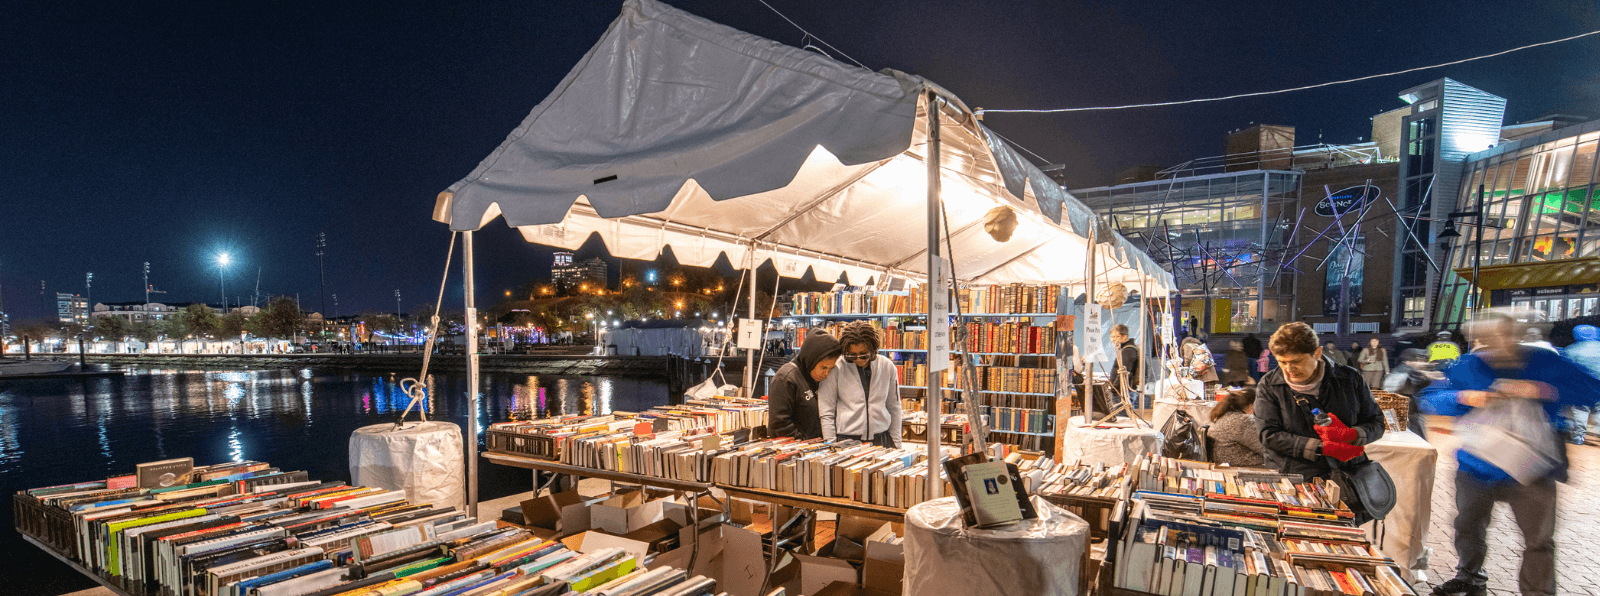 People browsing books at an outdoor tent next to a body of water